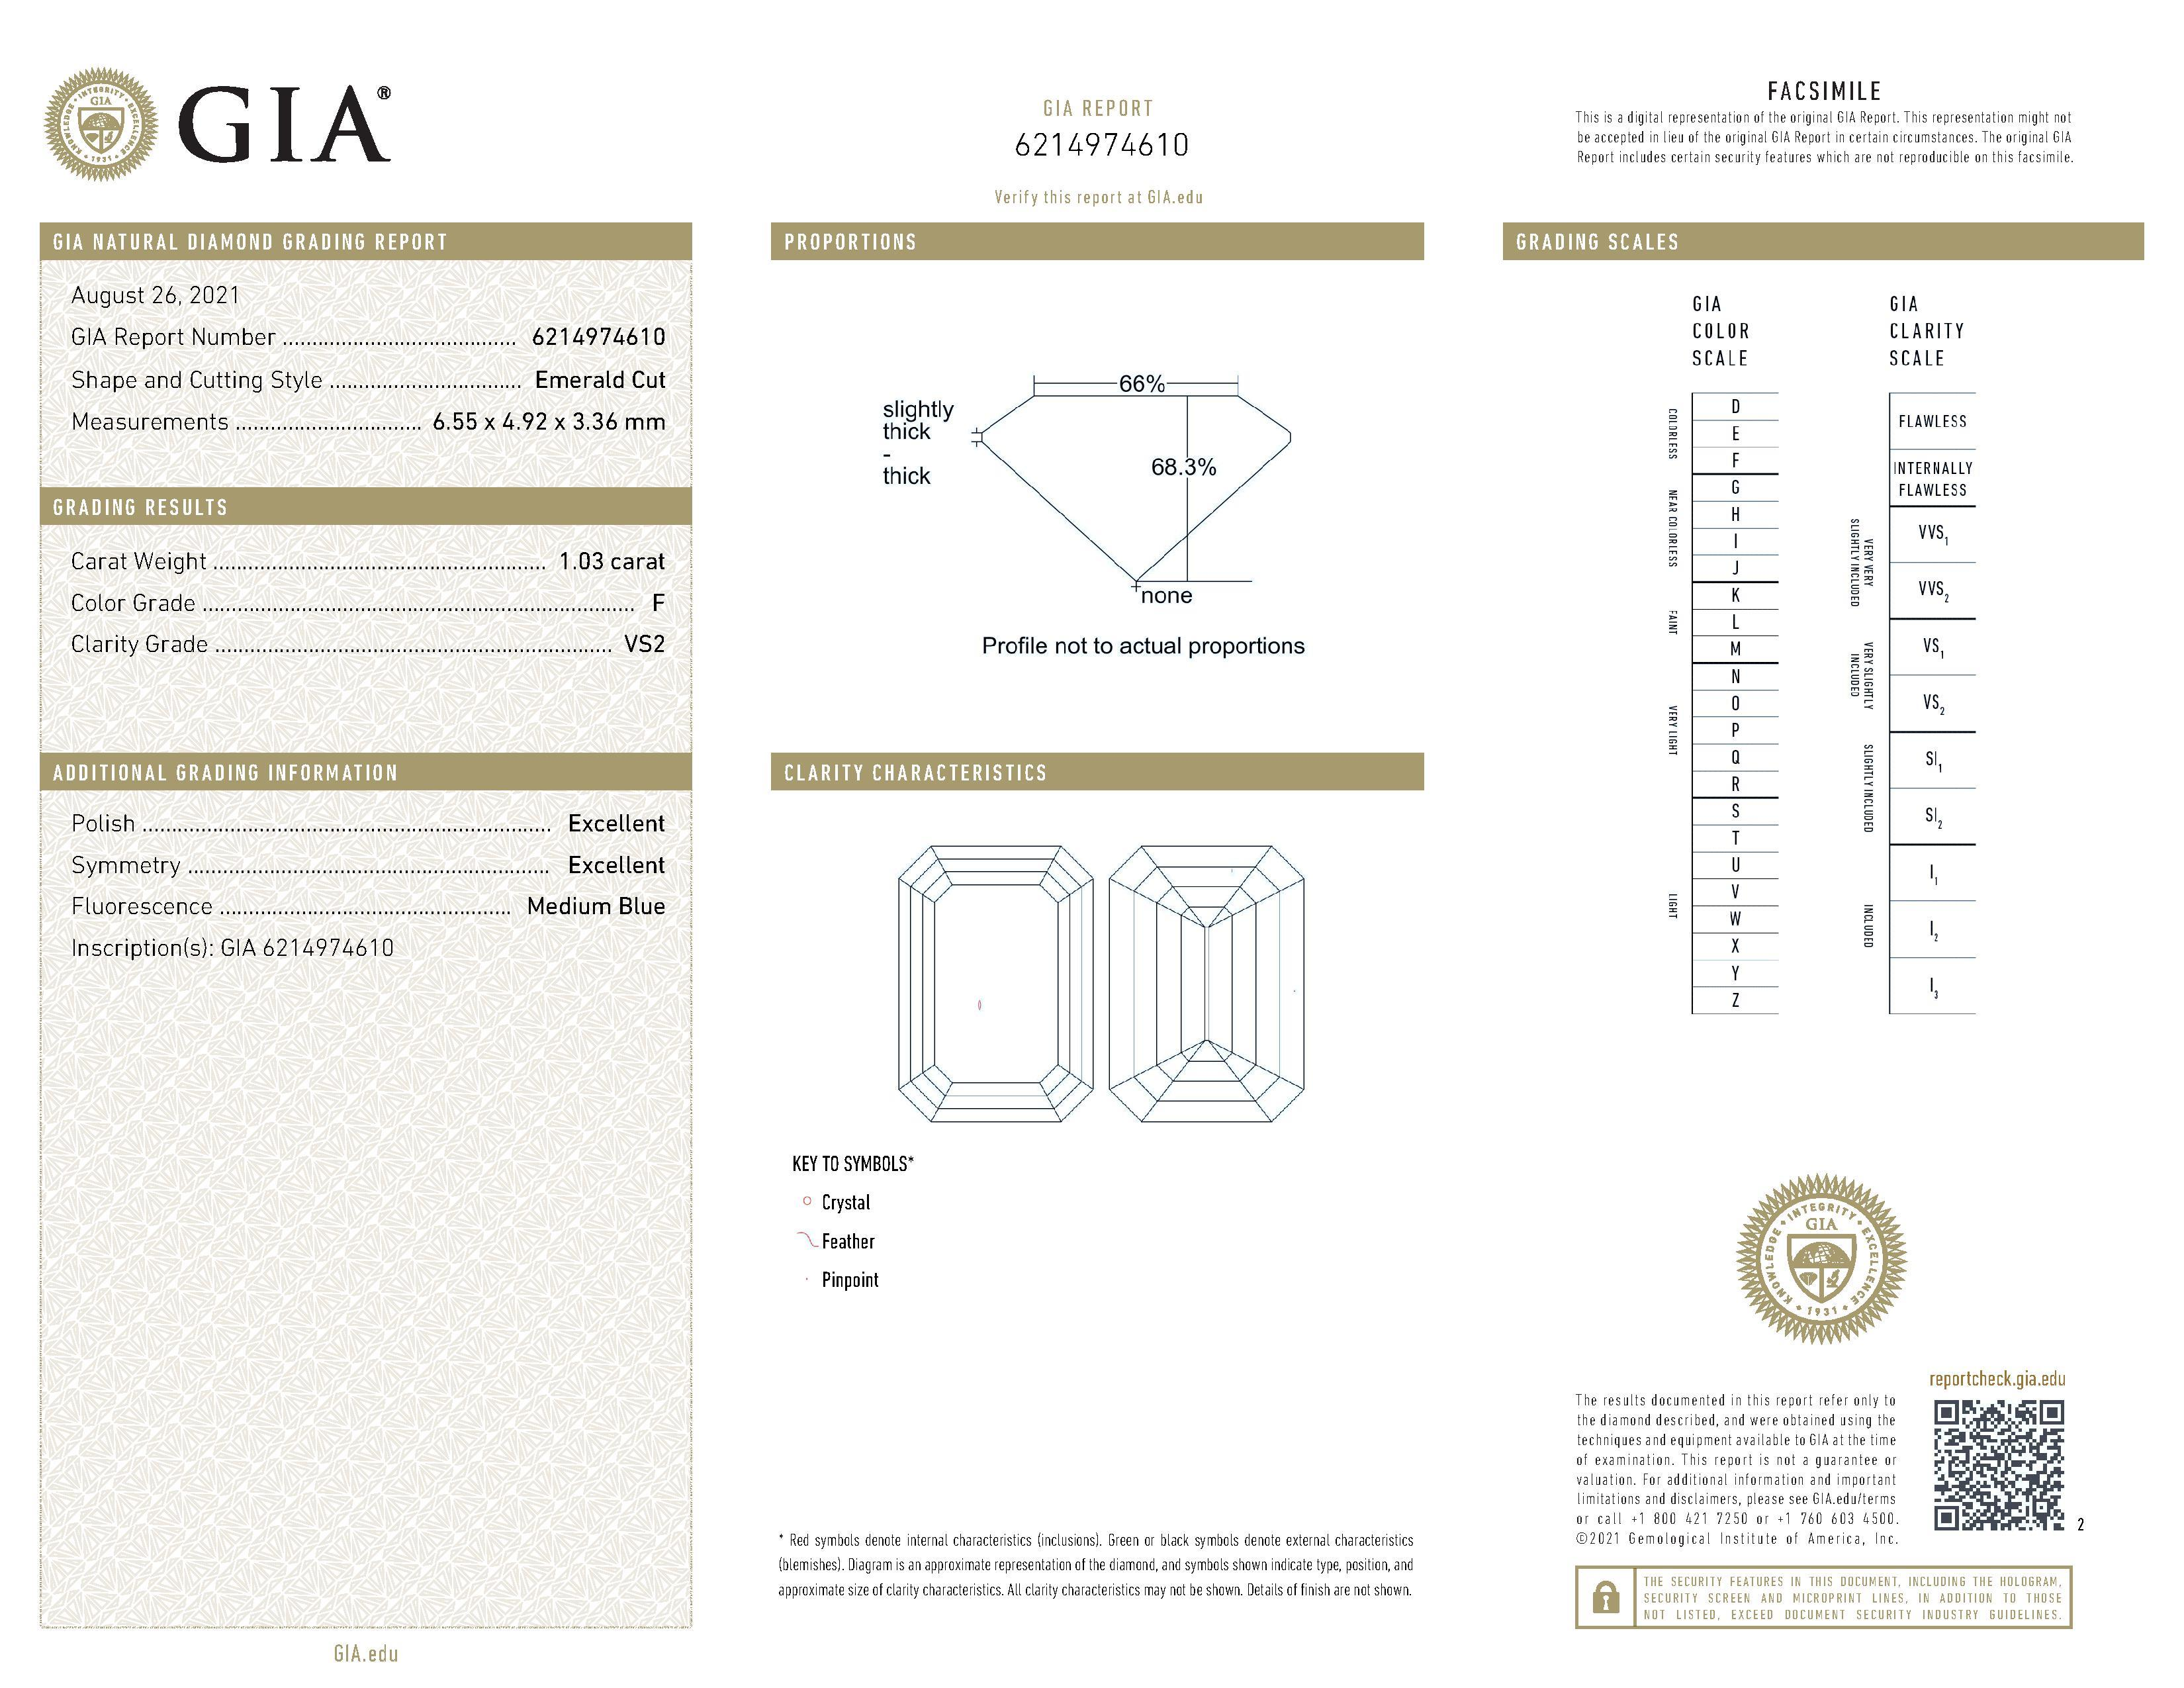 This is a 1.03 carat emerald shape, F color, VS2 clarity natural diamond accompanied by a GIA grading report.